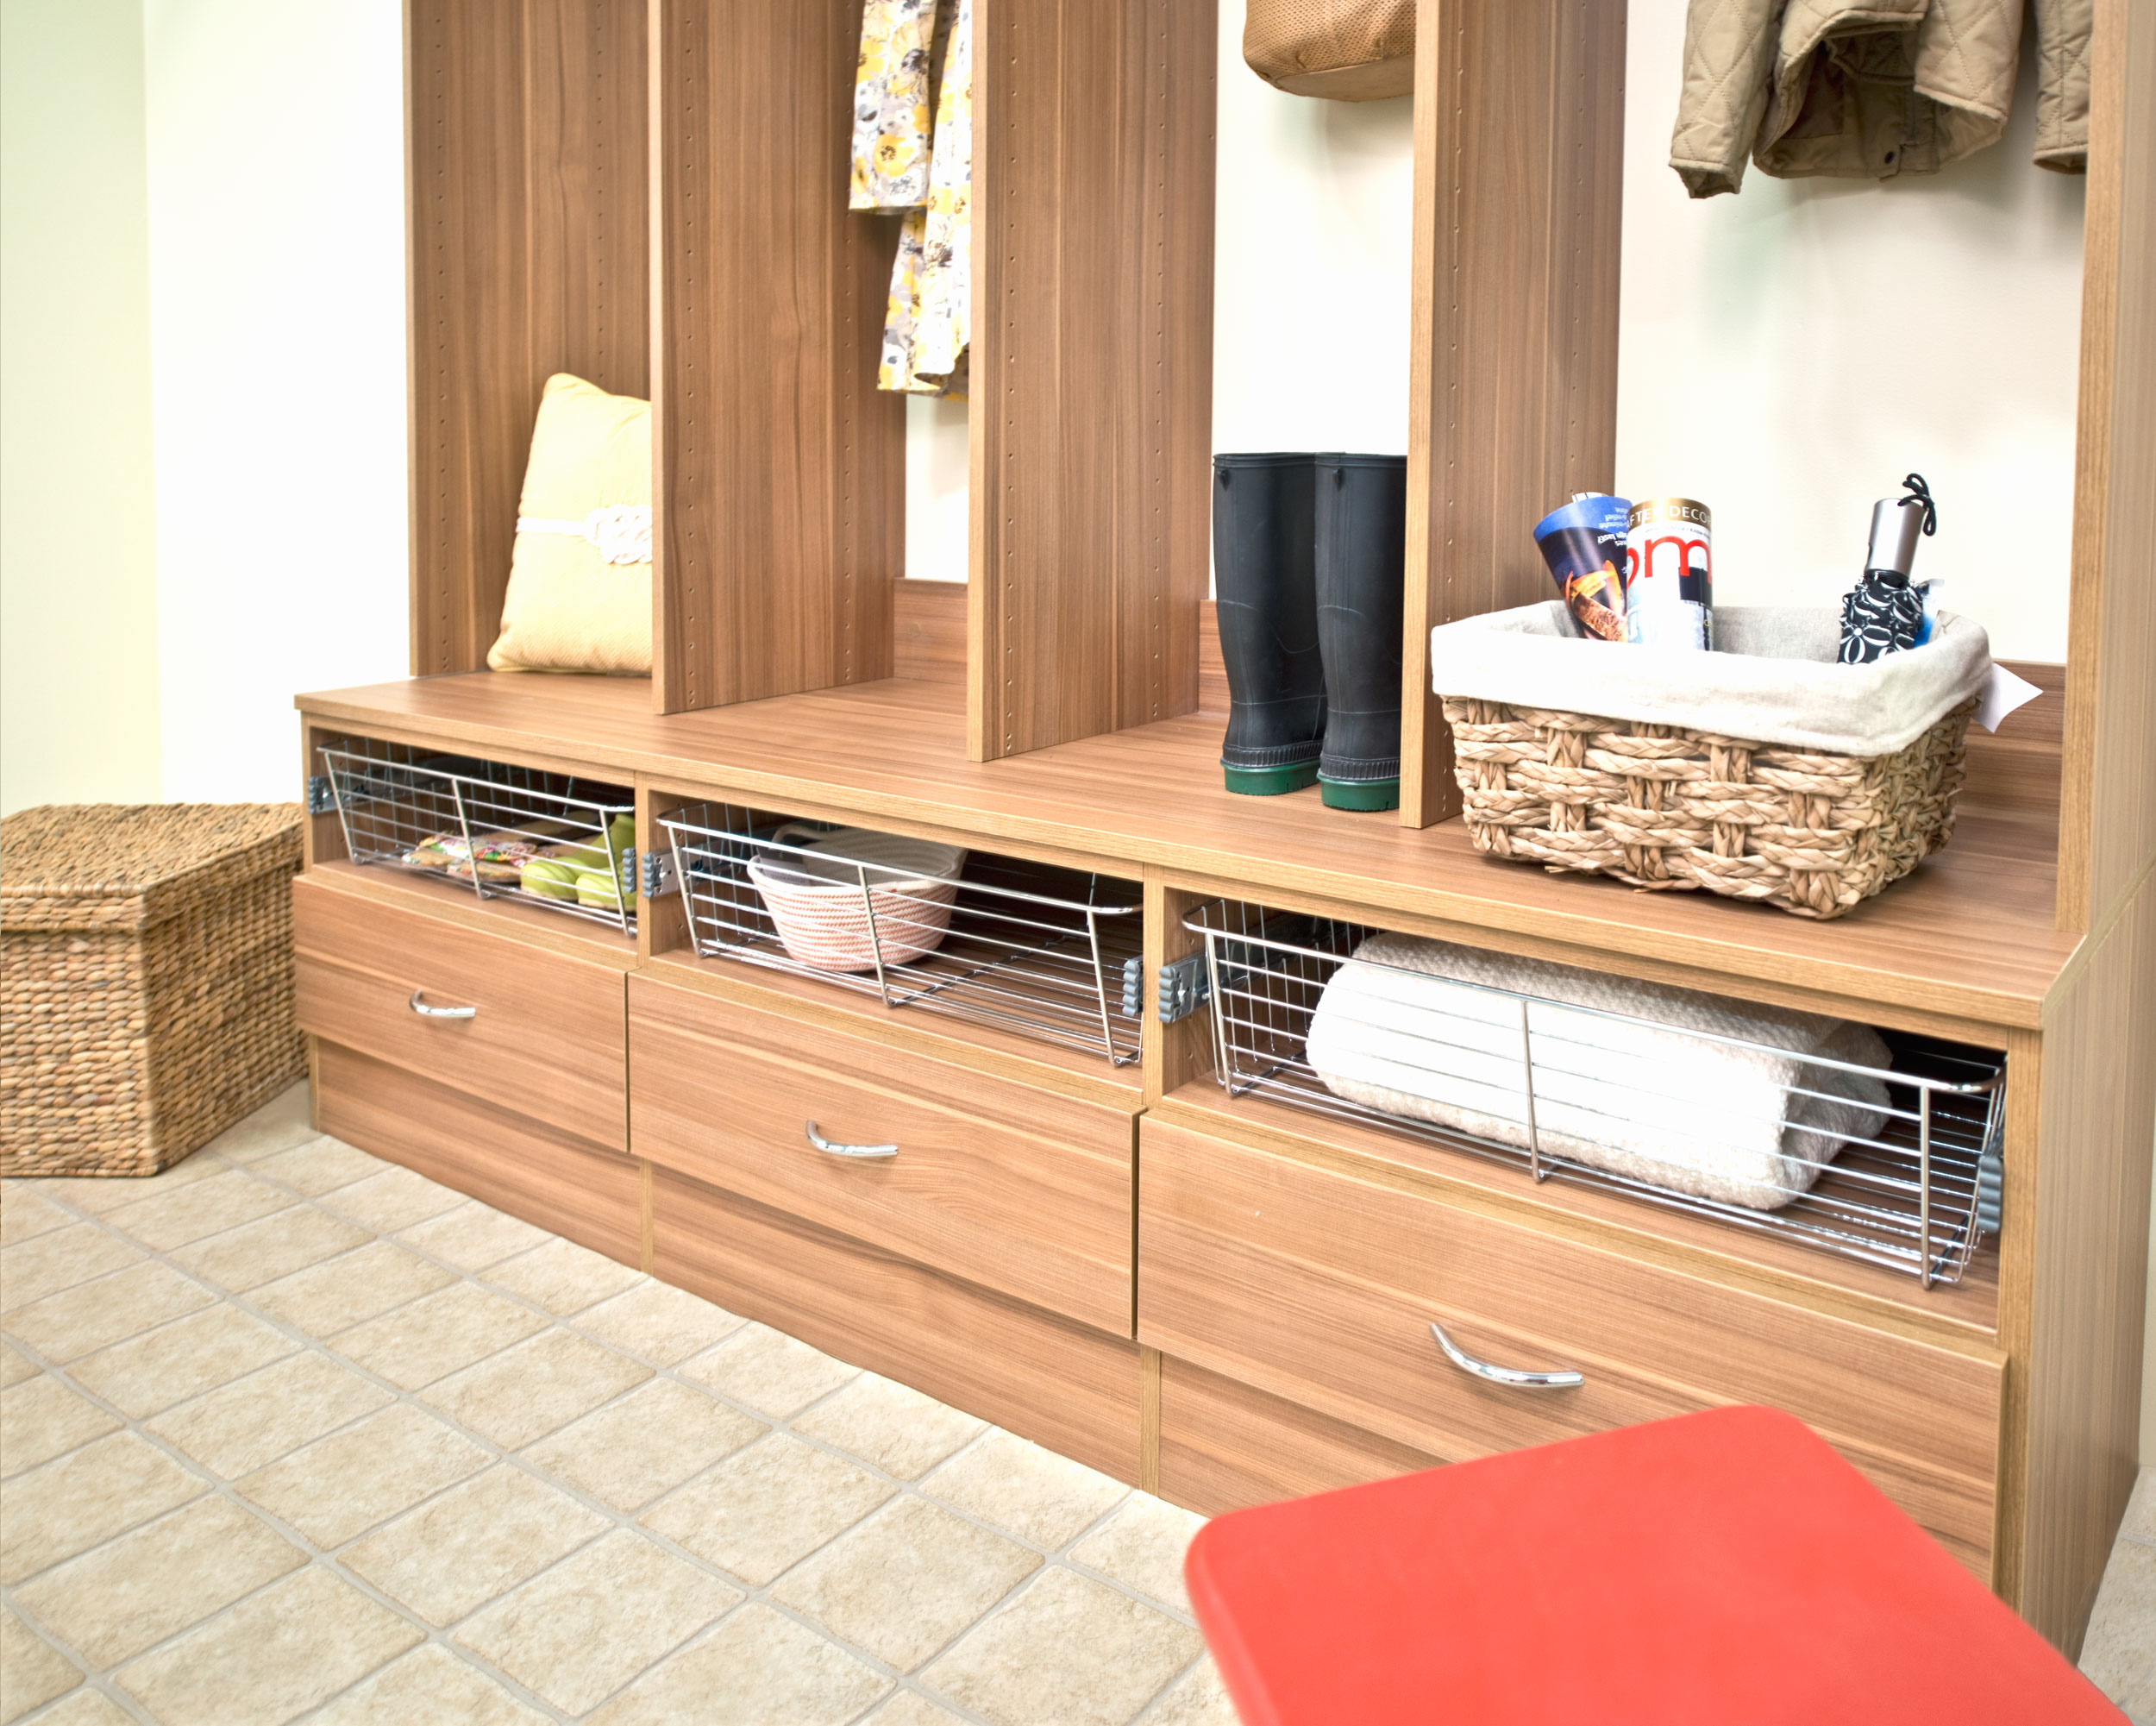 Spring Maintenance Tips Guide to Decluttering the Home